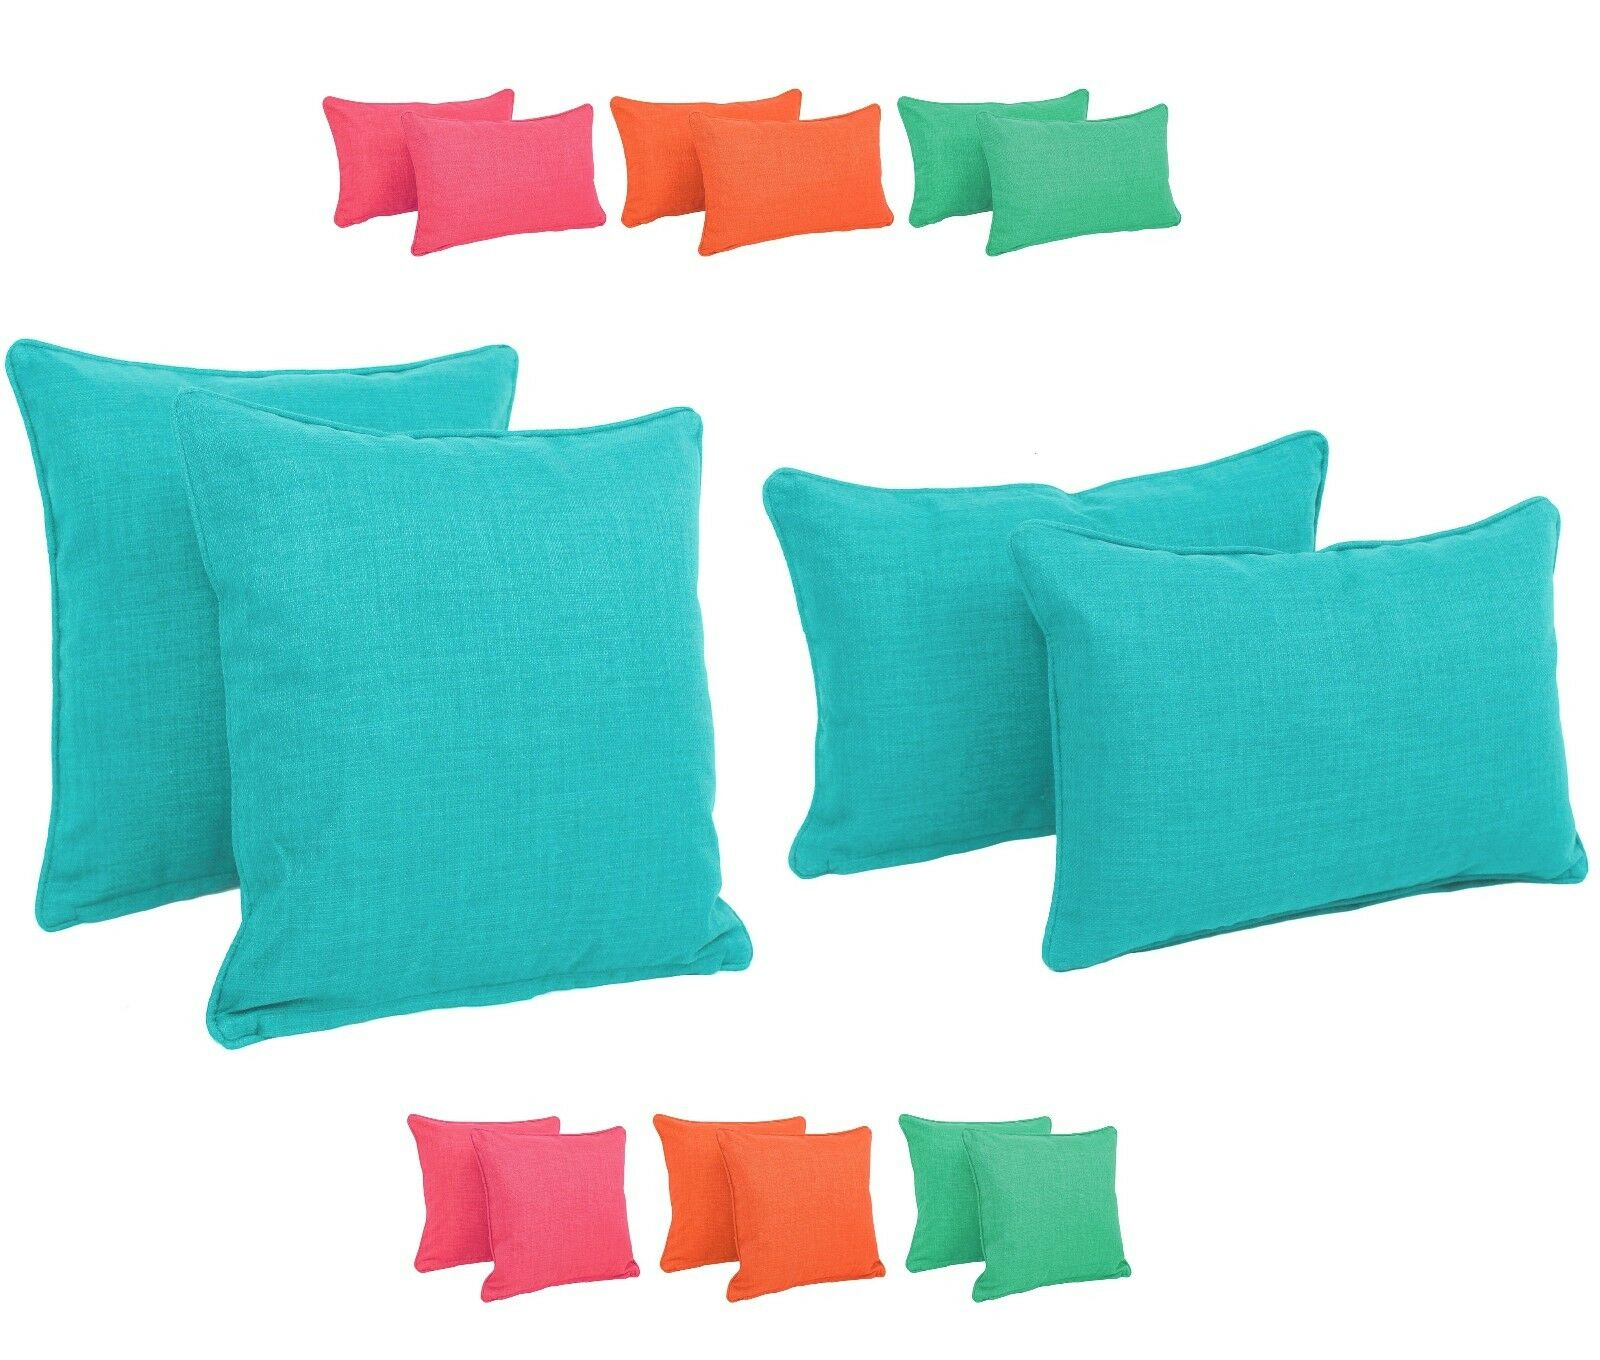 Outdoor Decorative Pillow Sets : Patio Throw Pillows Garden Decorative Cushions Outdoor Accent Pillow Cushion Set eBay